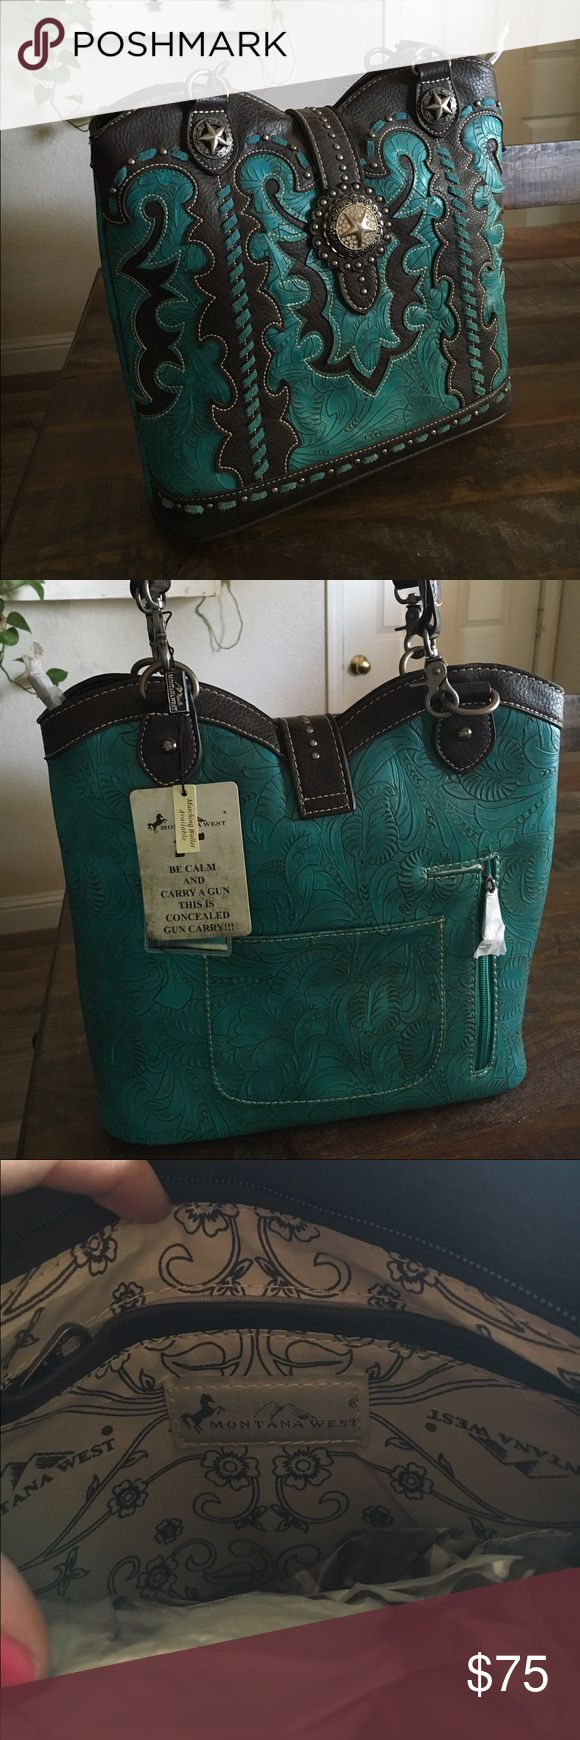 Conceal Carry Purse Brand New with tags, turquoise and black leather Montana West Conceal Carry Purse Montana West Bags Shoulder Bags